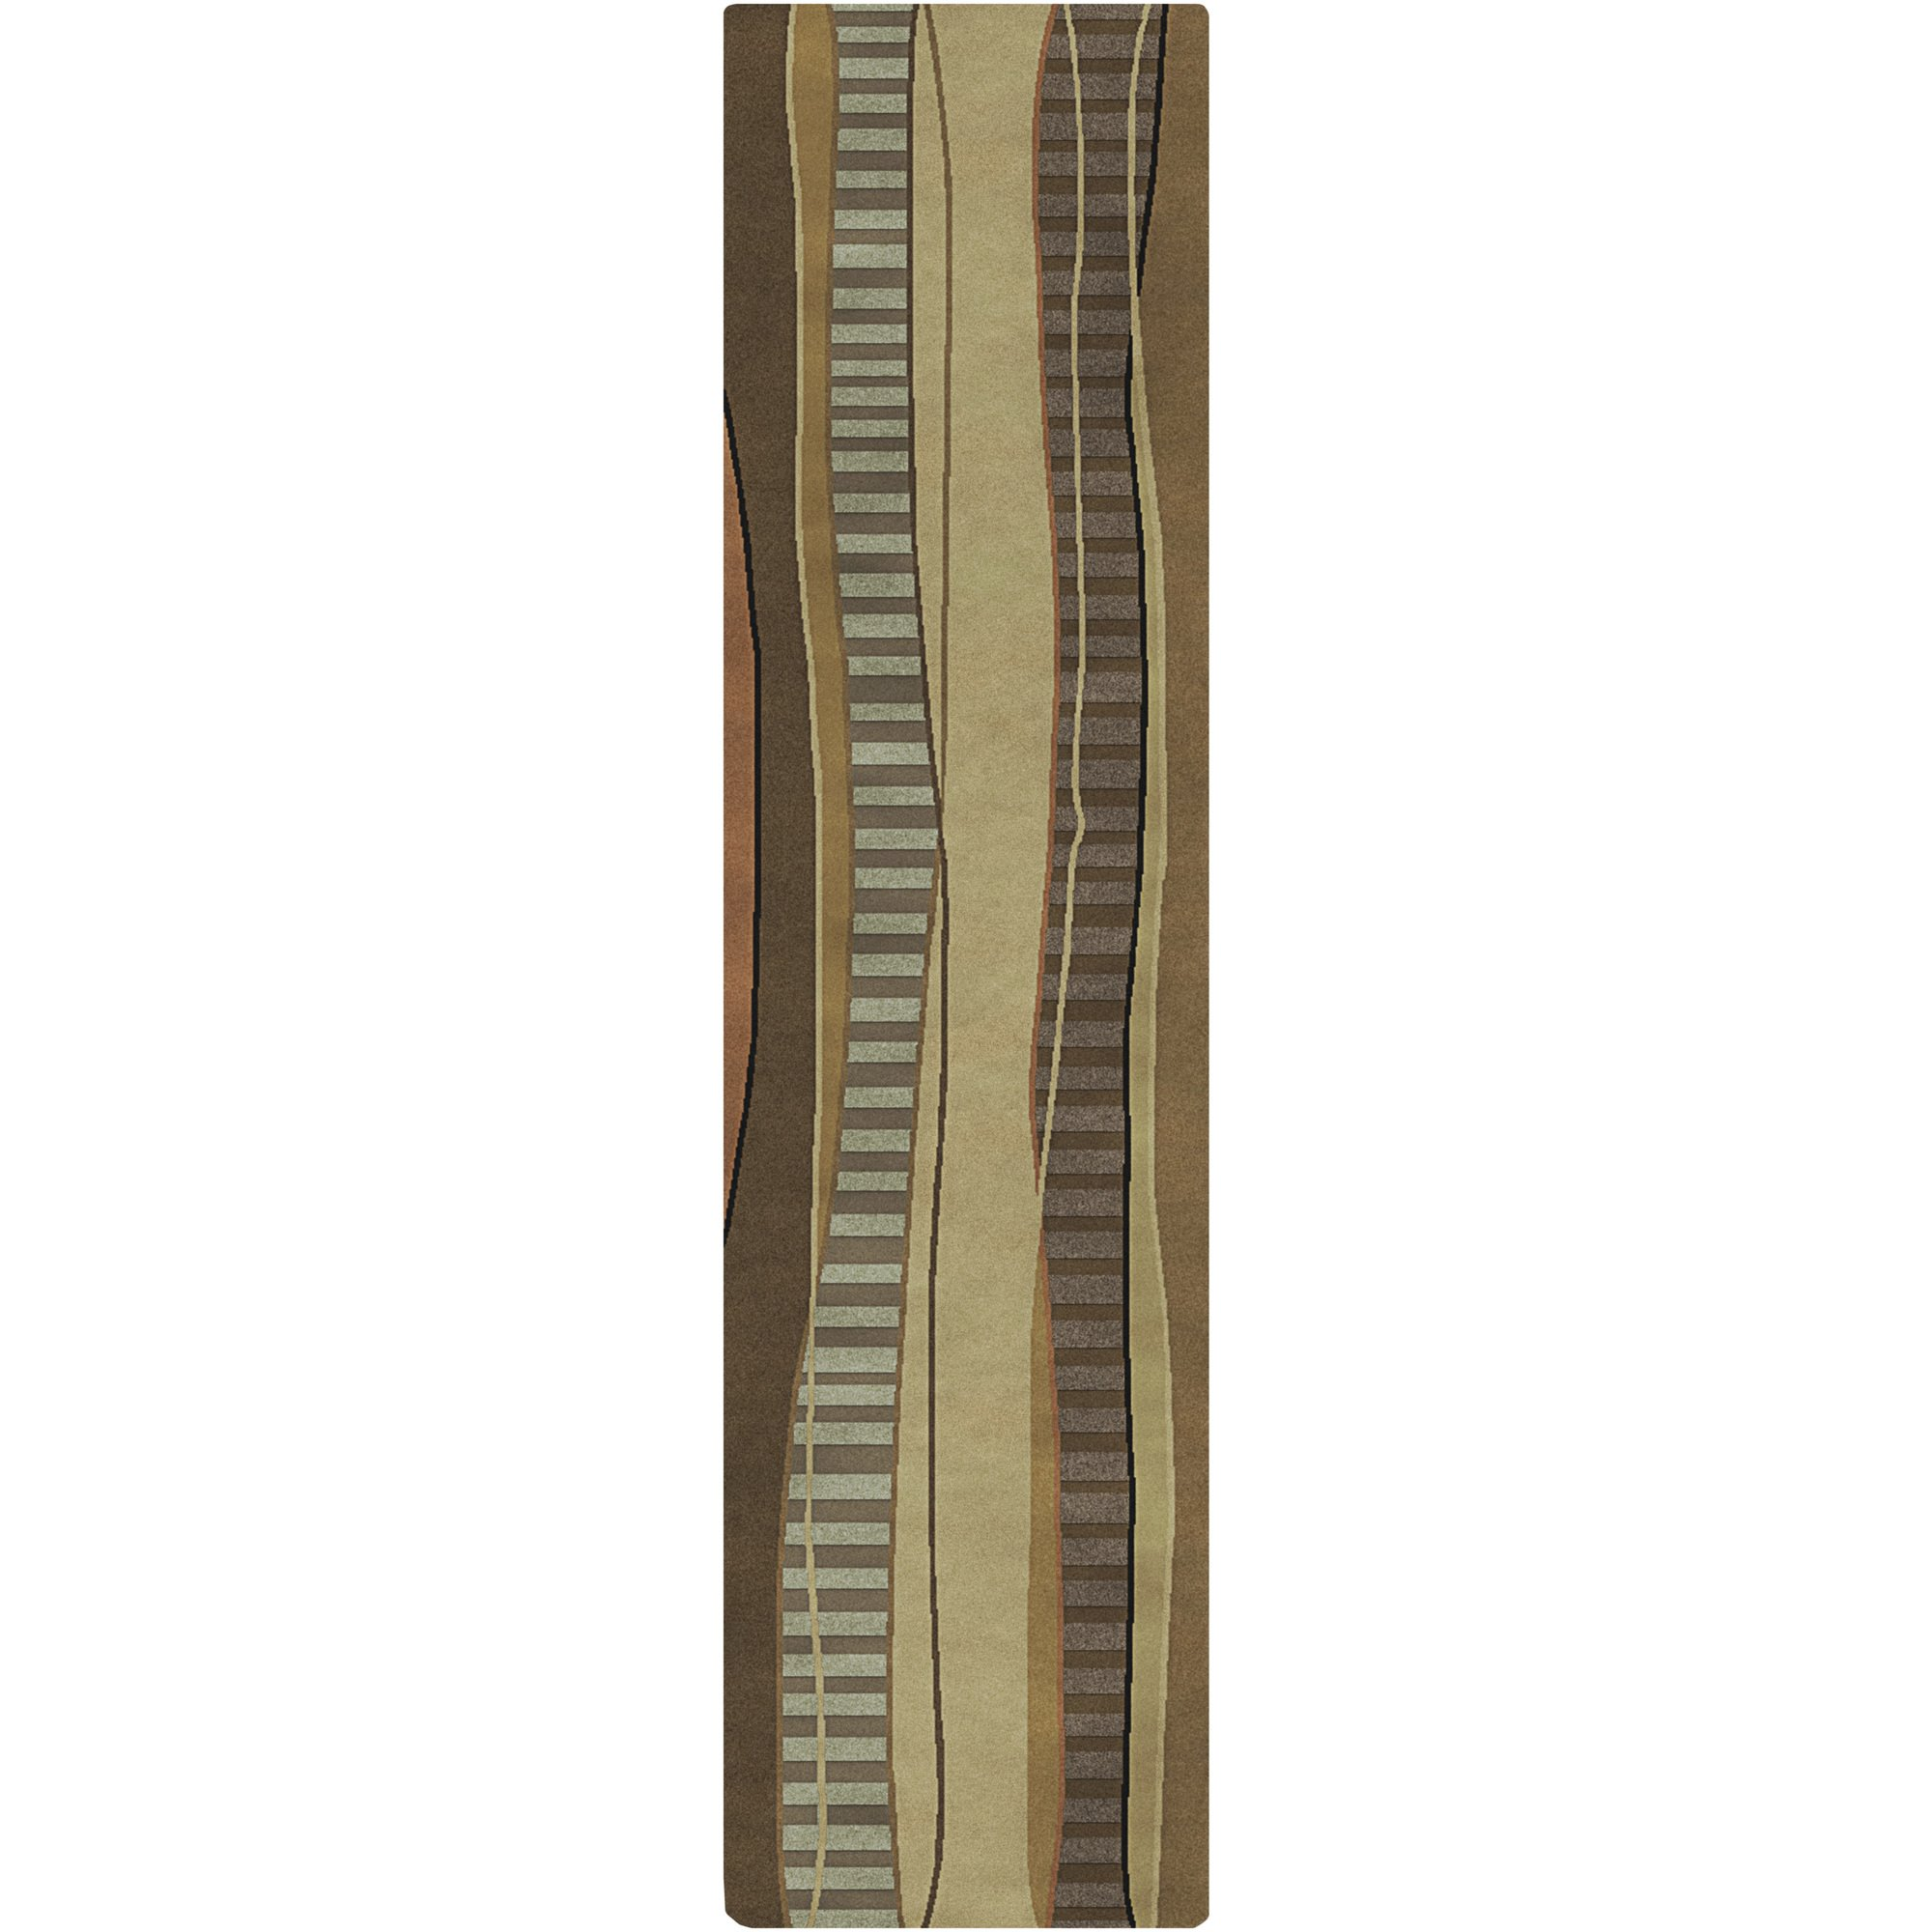 Surya Mugal IN-8020 Contemporary Hand Knotted 100% Semi-Worsted New Zealand Wool Driftwood Brown 2'6'' x 10' Abstract Runner by Surya